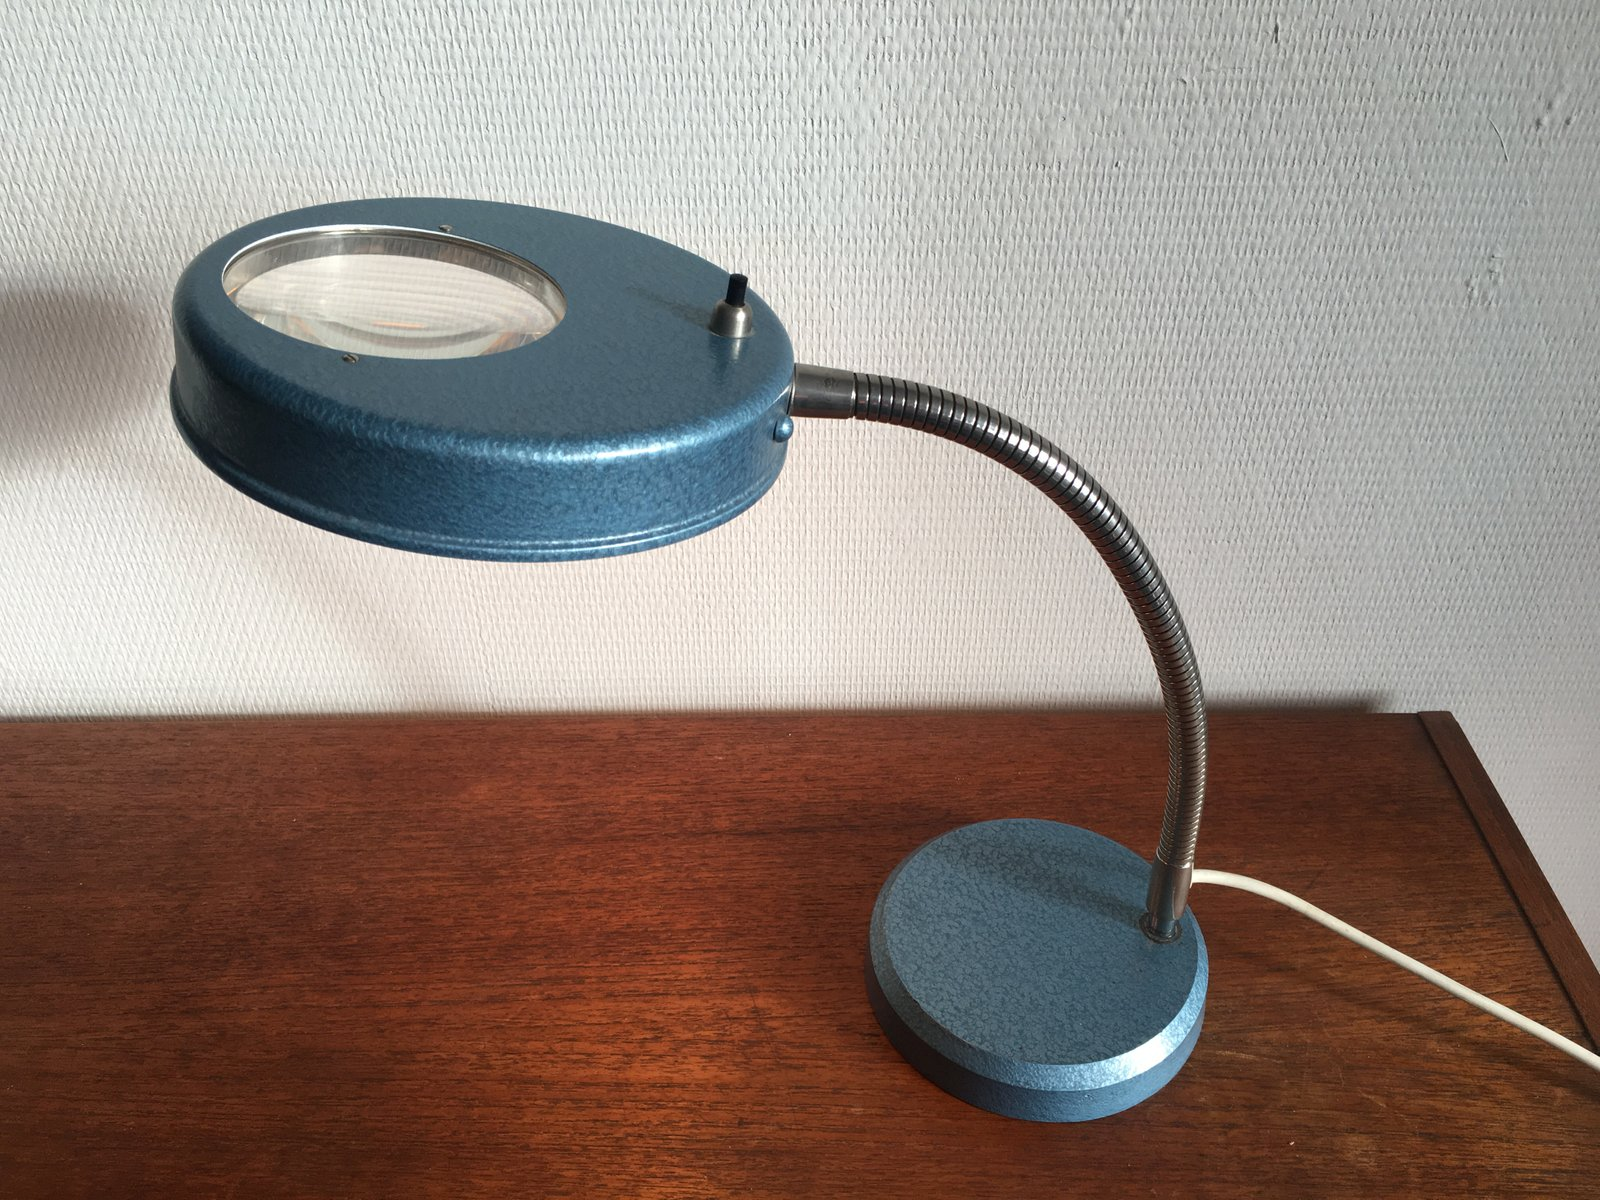 Vintage Desk Lamp With Magnifying Glass 1950s